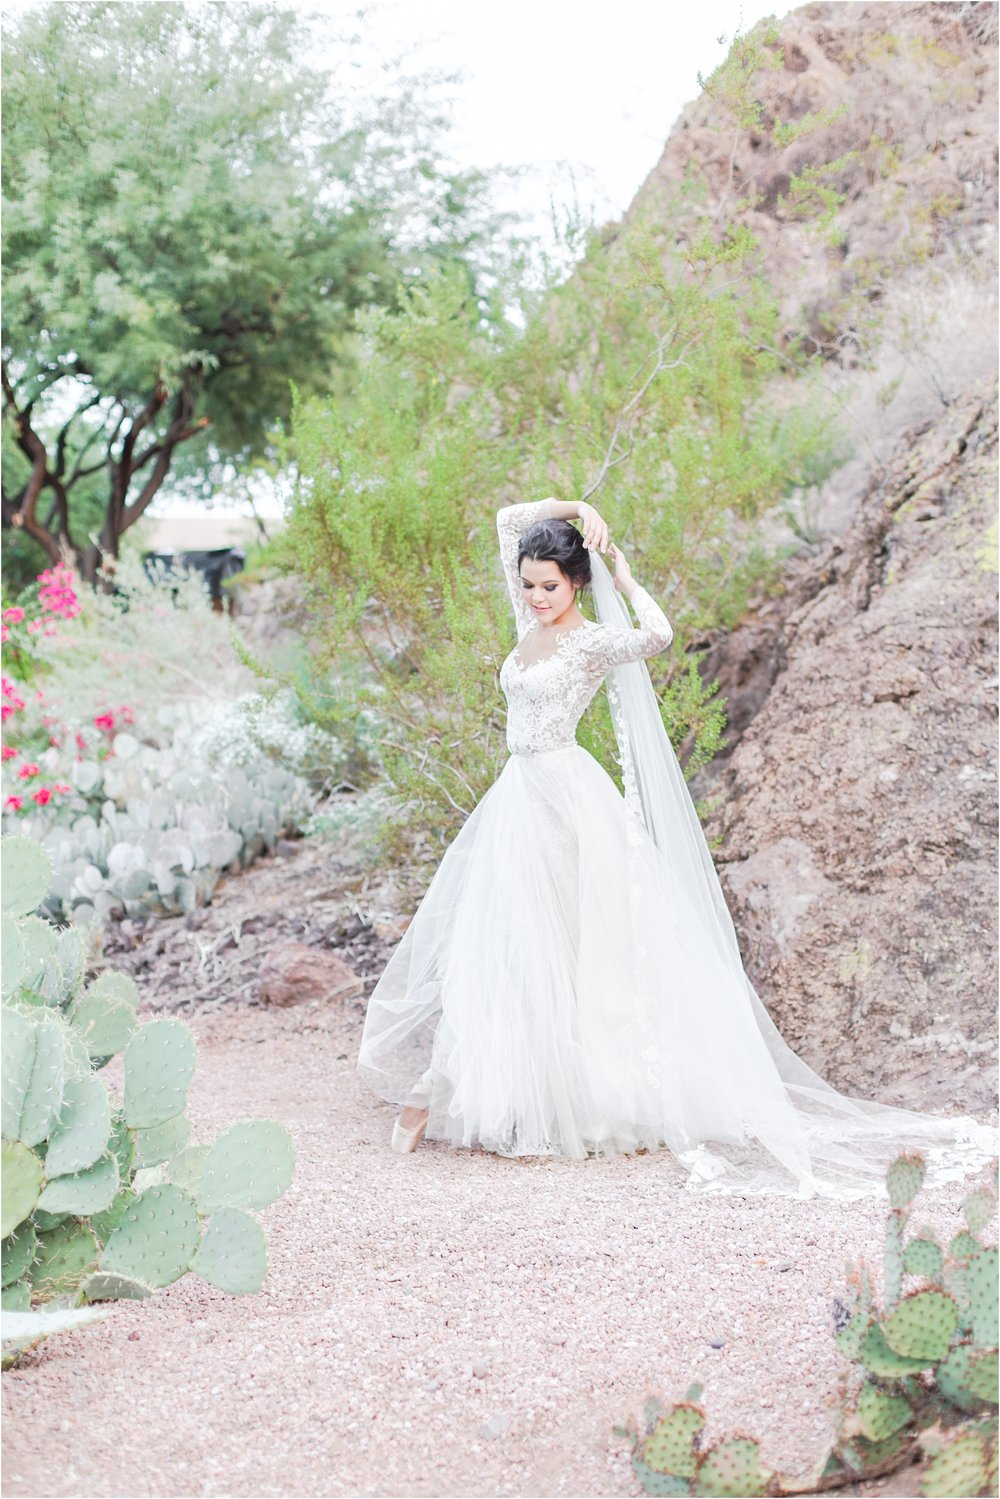 paris-and-ballerina-inspired-bride-wedding-photos-at-phoenix-marriott-tempe-at-the-buttes-in-tempe-arizona-by-courtney-carolyn-photography_0015.jpg